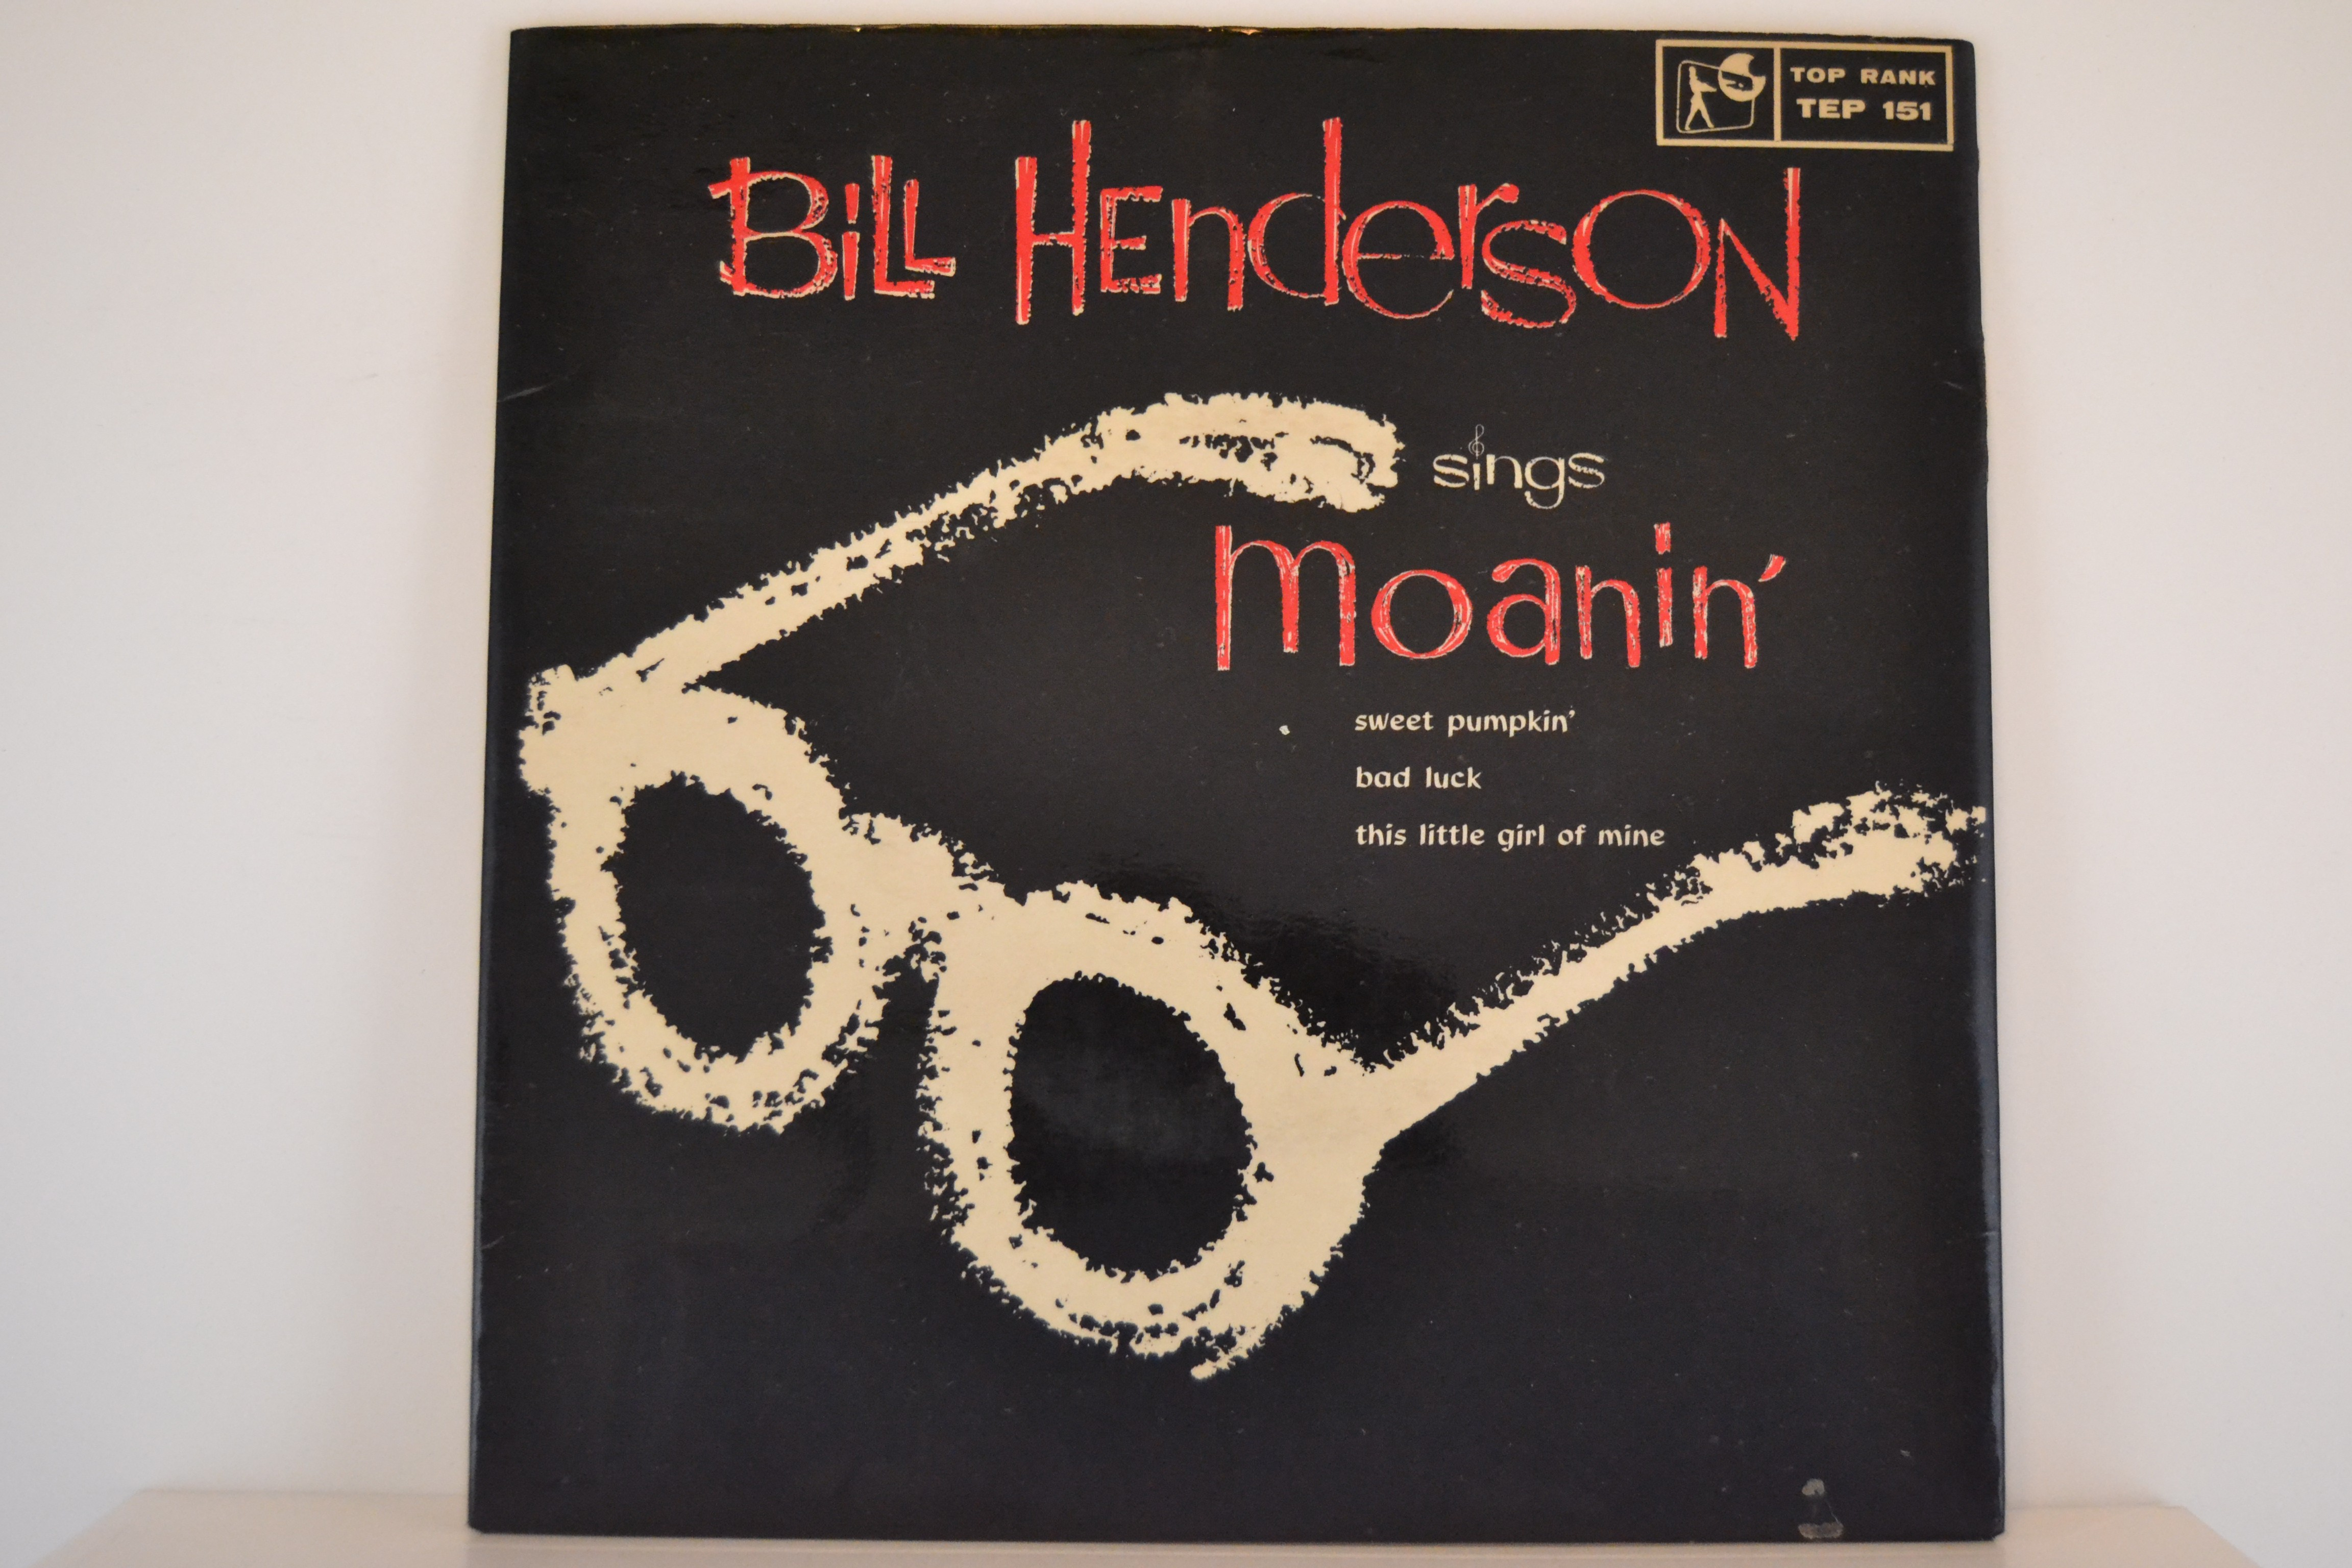 BILL HENDERSON : (EP) Moanin' / Sweet pumkin' / Bad luck / This little girl of mine